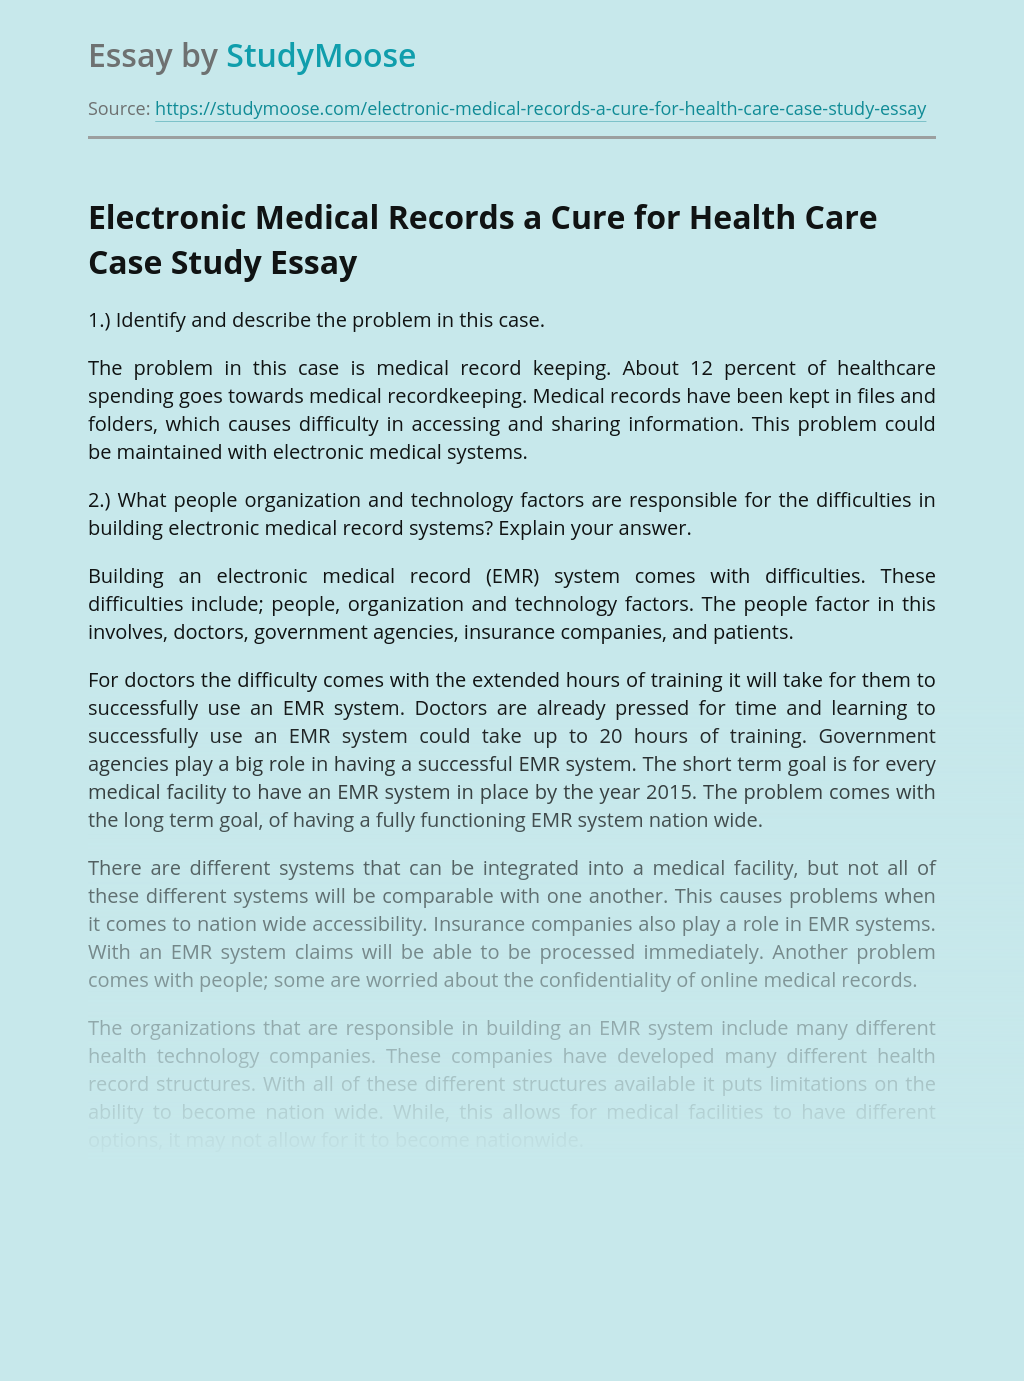 Electronic Medical Records a Cure for Health Care Case Study